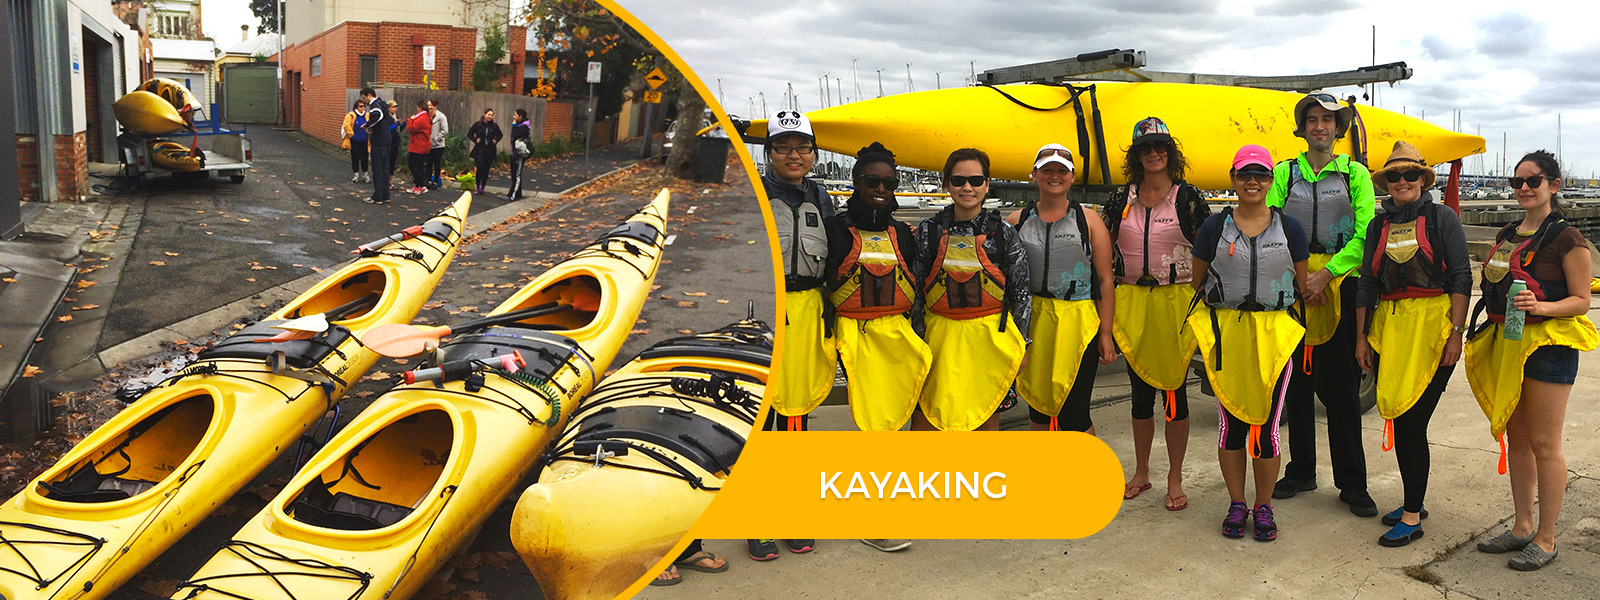 Kayaking Melbourne